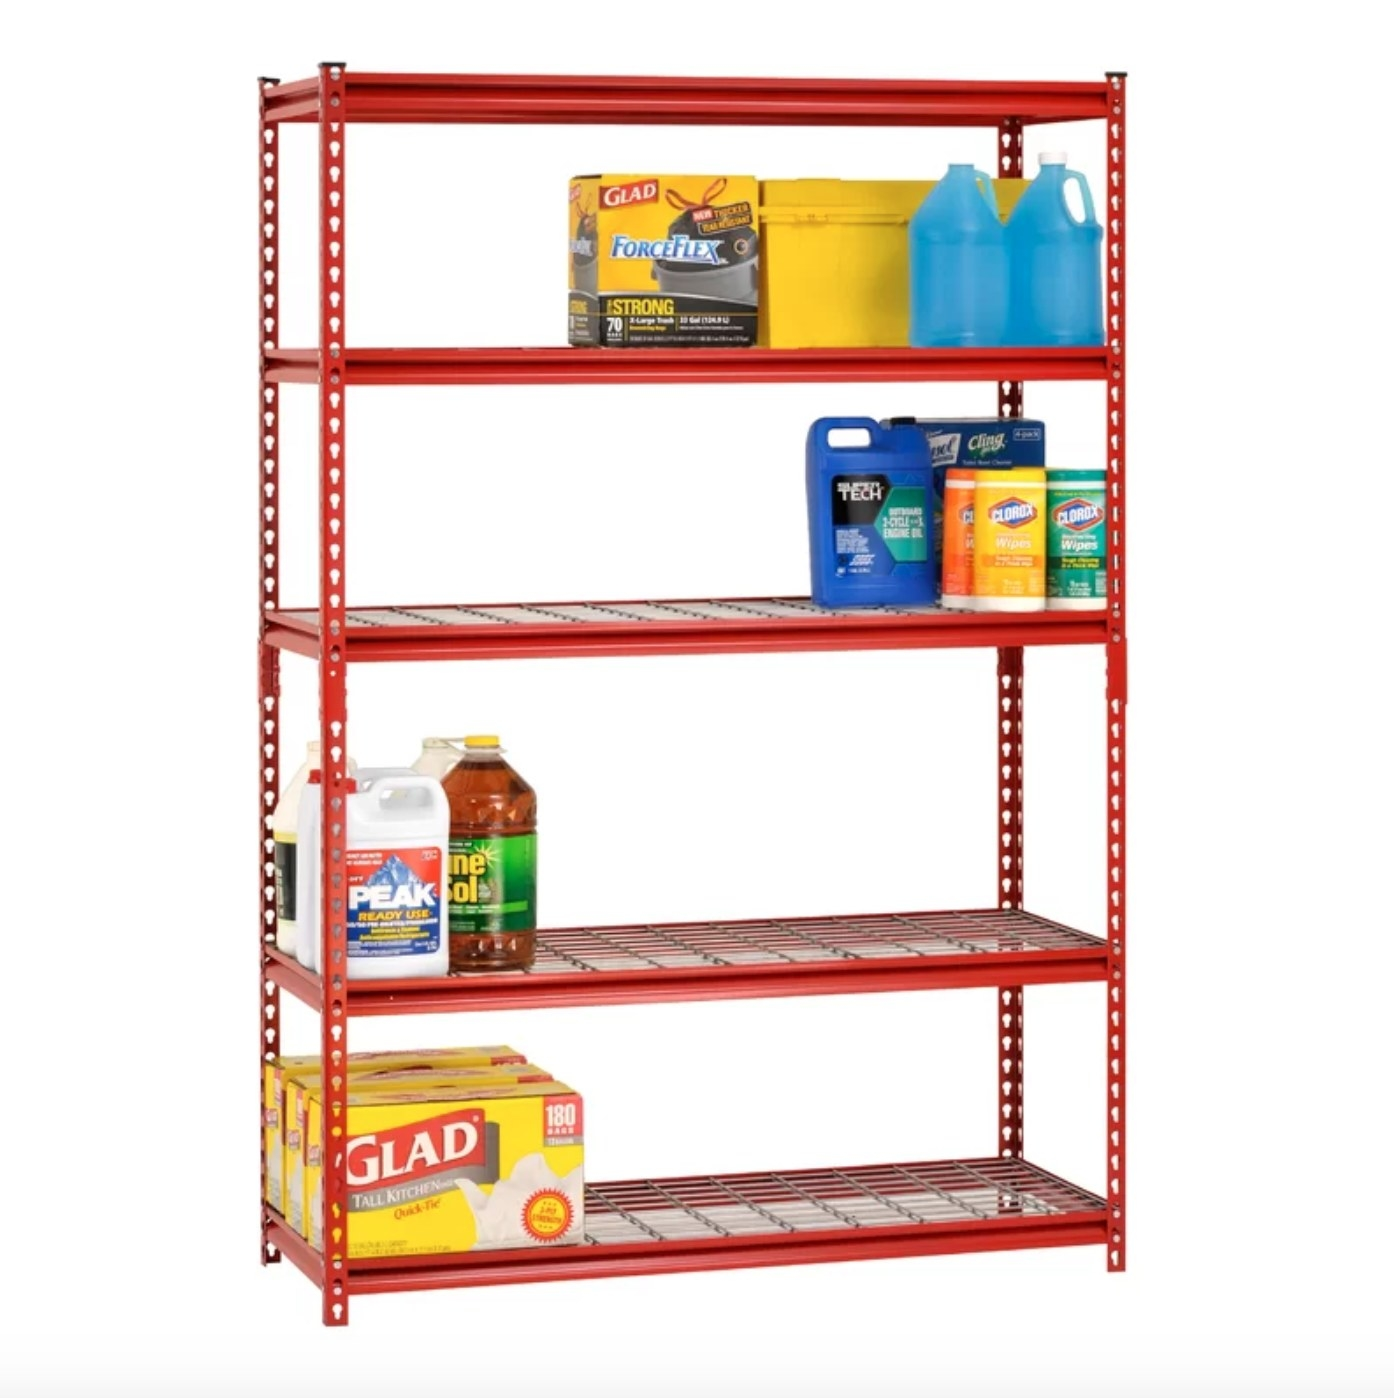 The storage shelf in red holding cleaning items